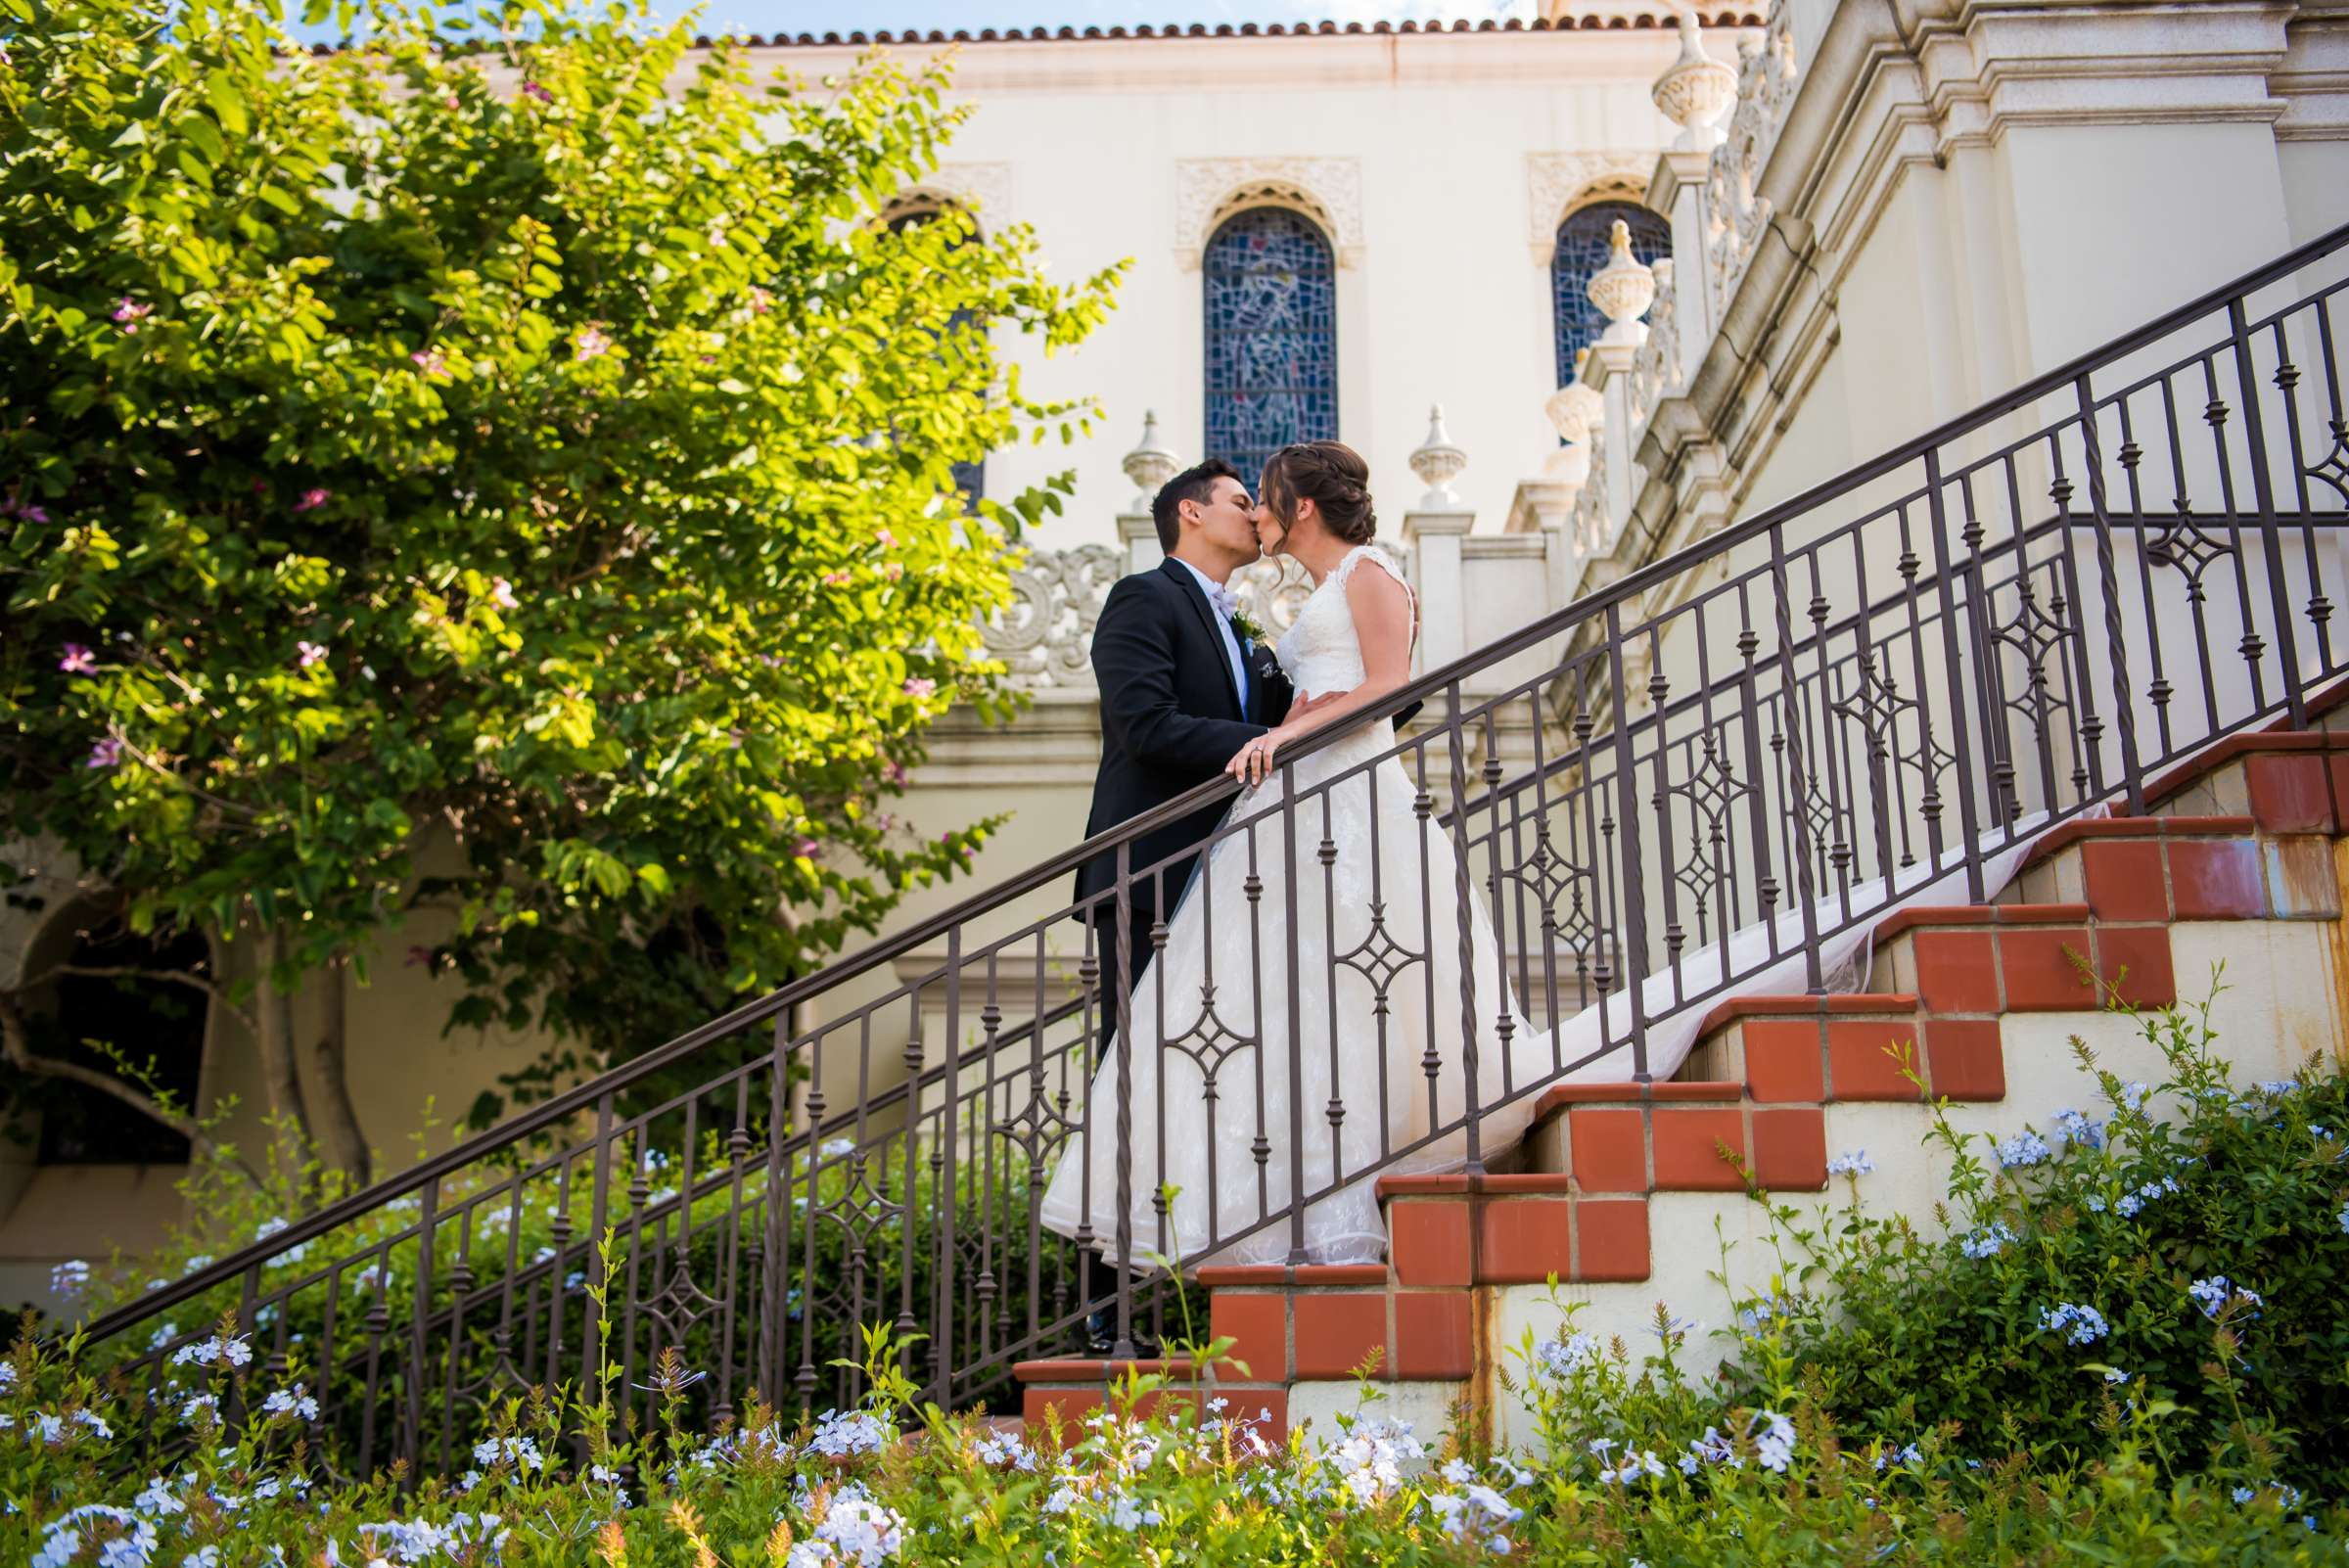 The Immaculata Wedding, Arianna and Jonah Wedding Photo #69 by True Photography